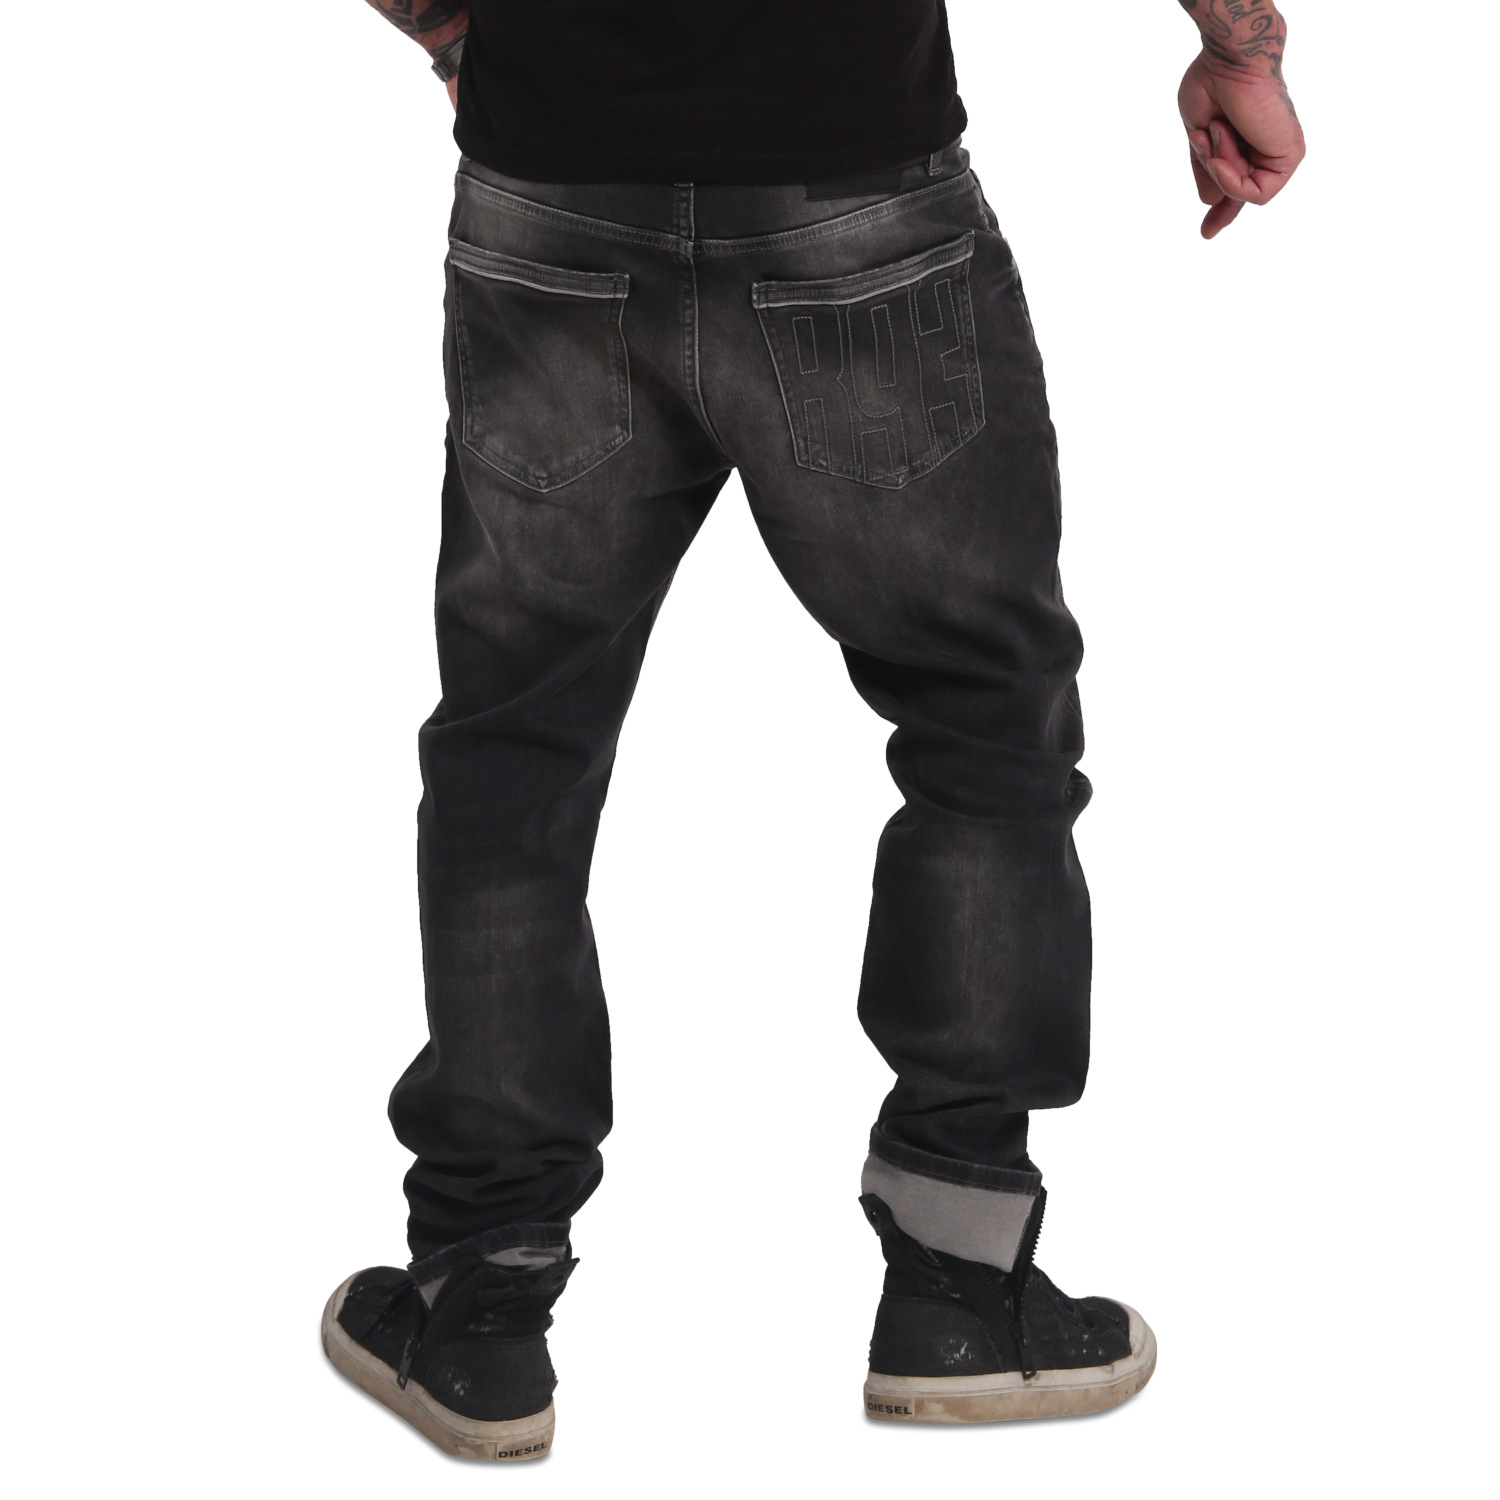 420 Straight Jeans